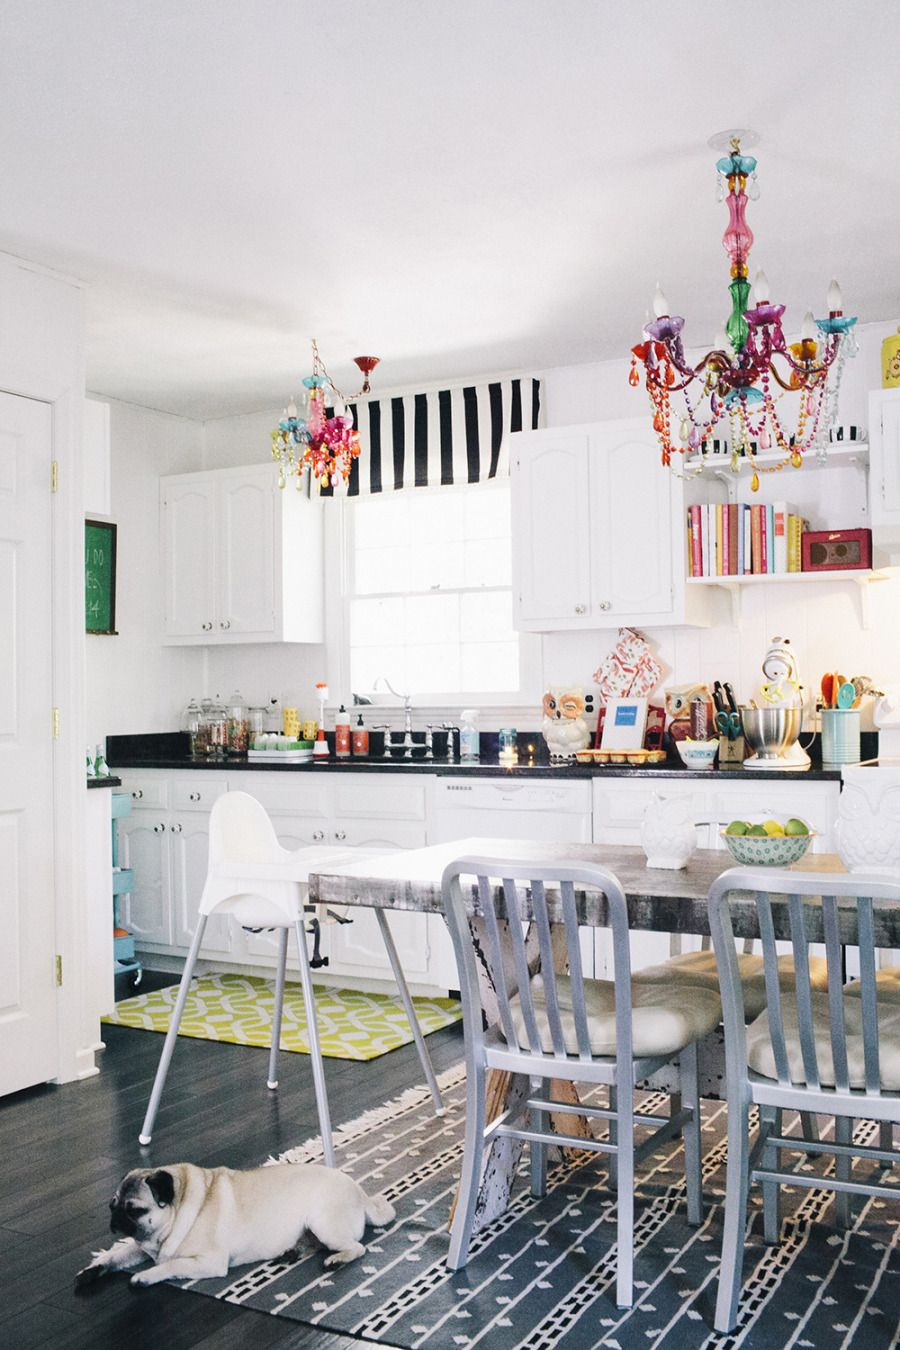 Black & white and color all over! An incredible kitchen   Read more - http://www.stylemepretty.com/living/2013/09/23/flora-faunas-home-tour/